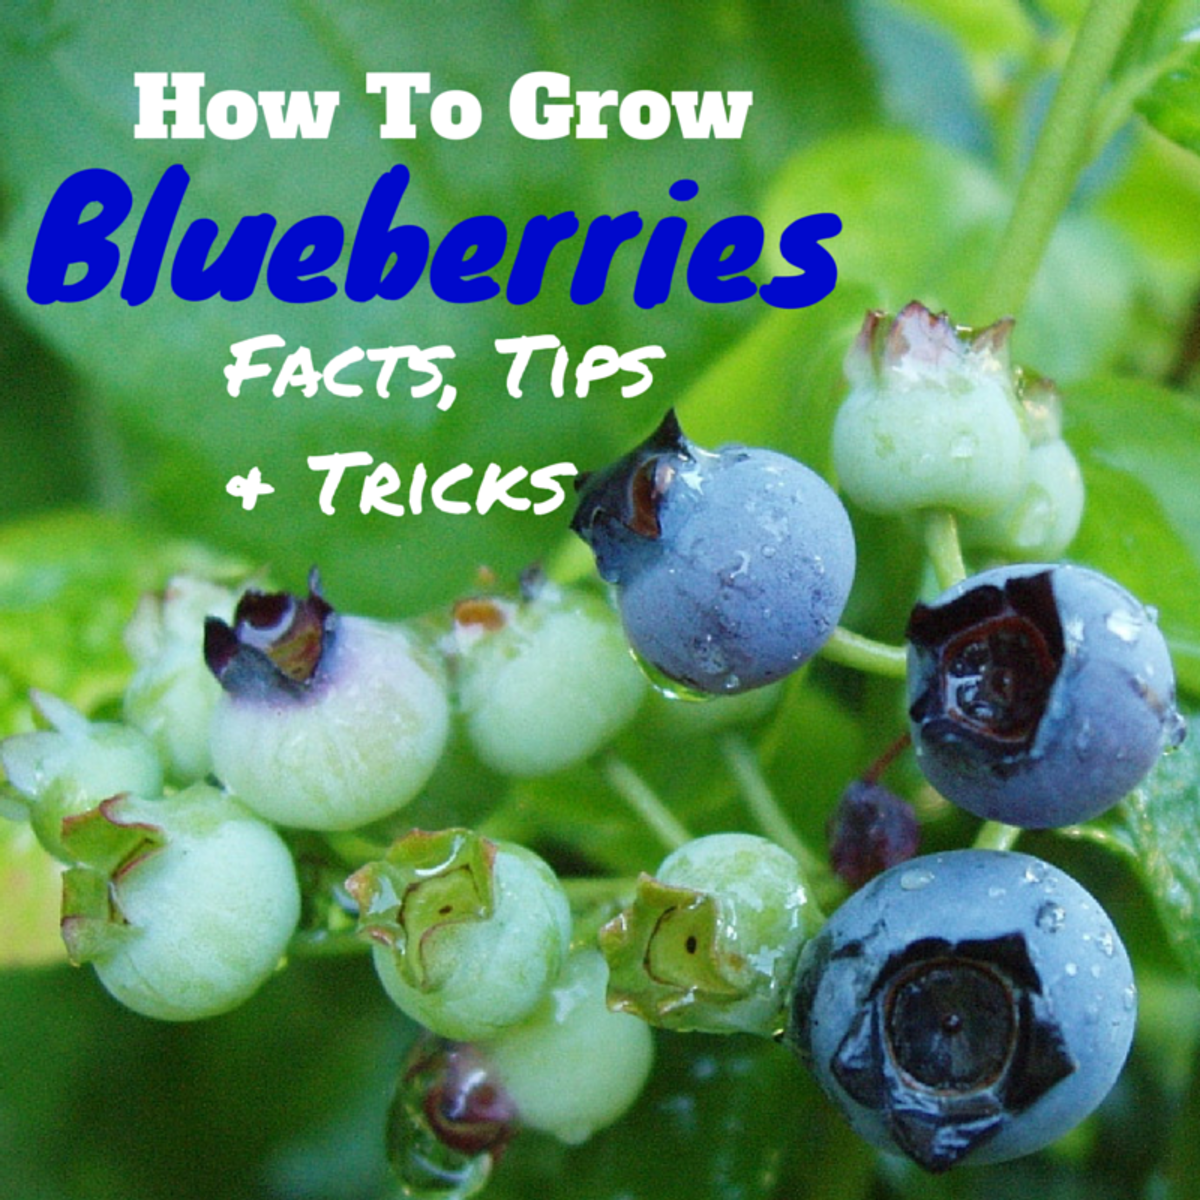 Blueberries are the superfood you can grow in your own backyard, and this guide will provide you with all the information you need to grow and care for this amazing plant.